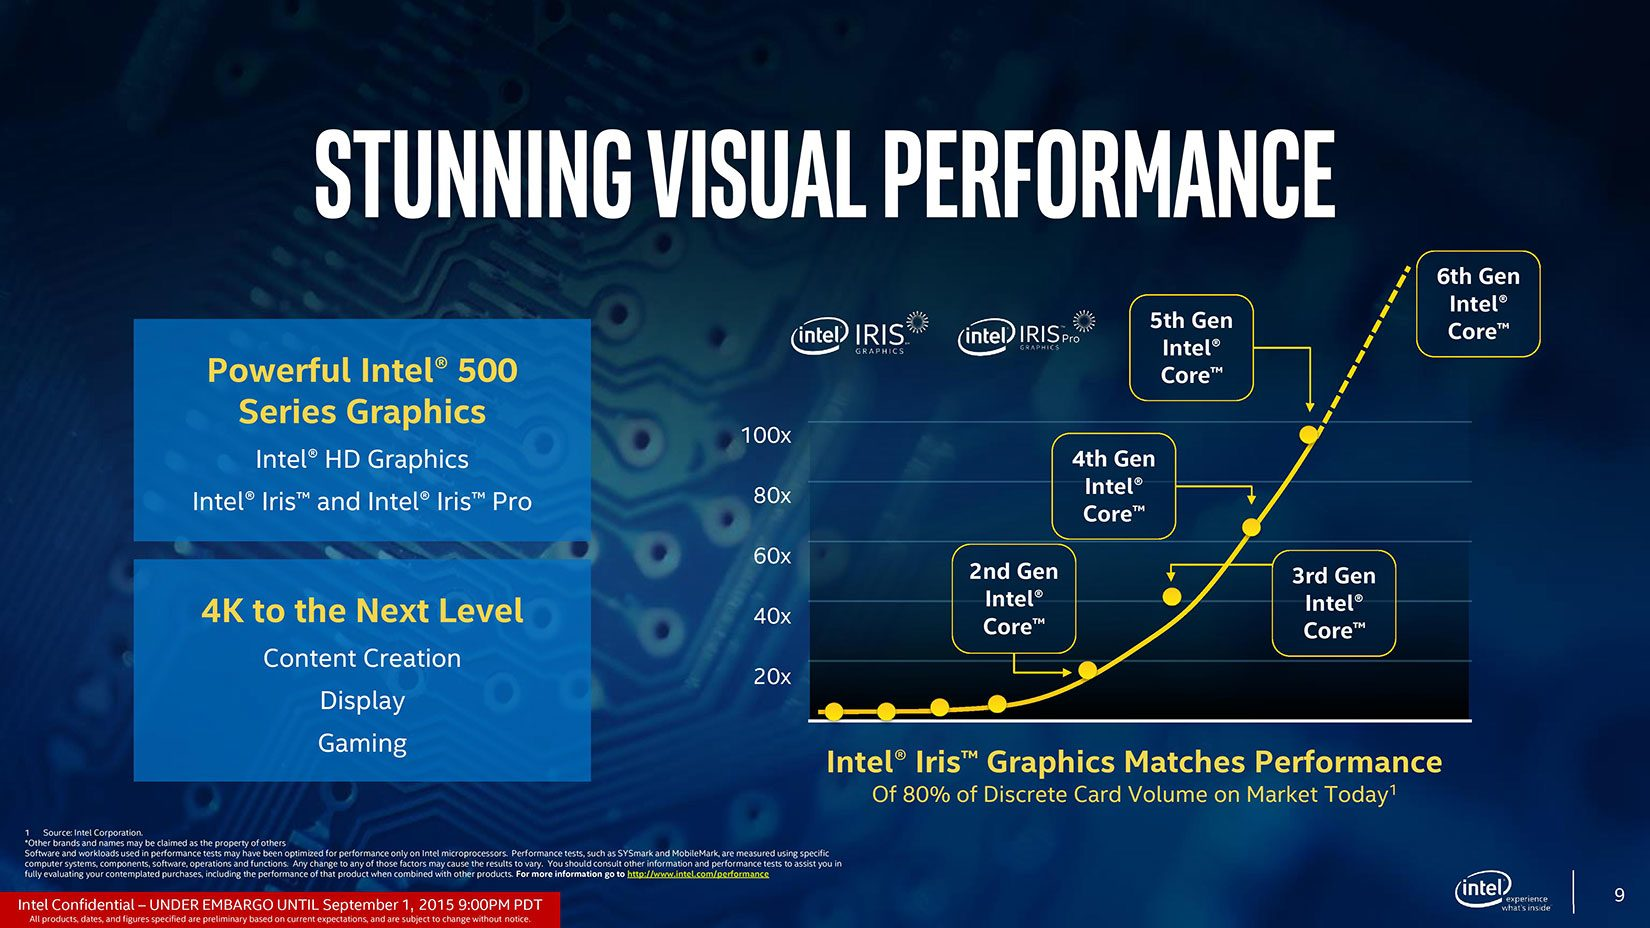 The Intel HD 520 graphics chip is a significant upgrade over the Intel HD 5500 solution integrated within the Broadwell Core i7-5500U